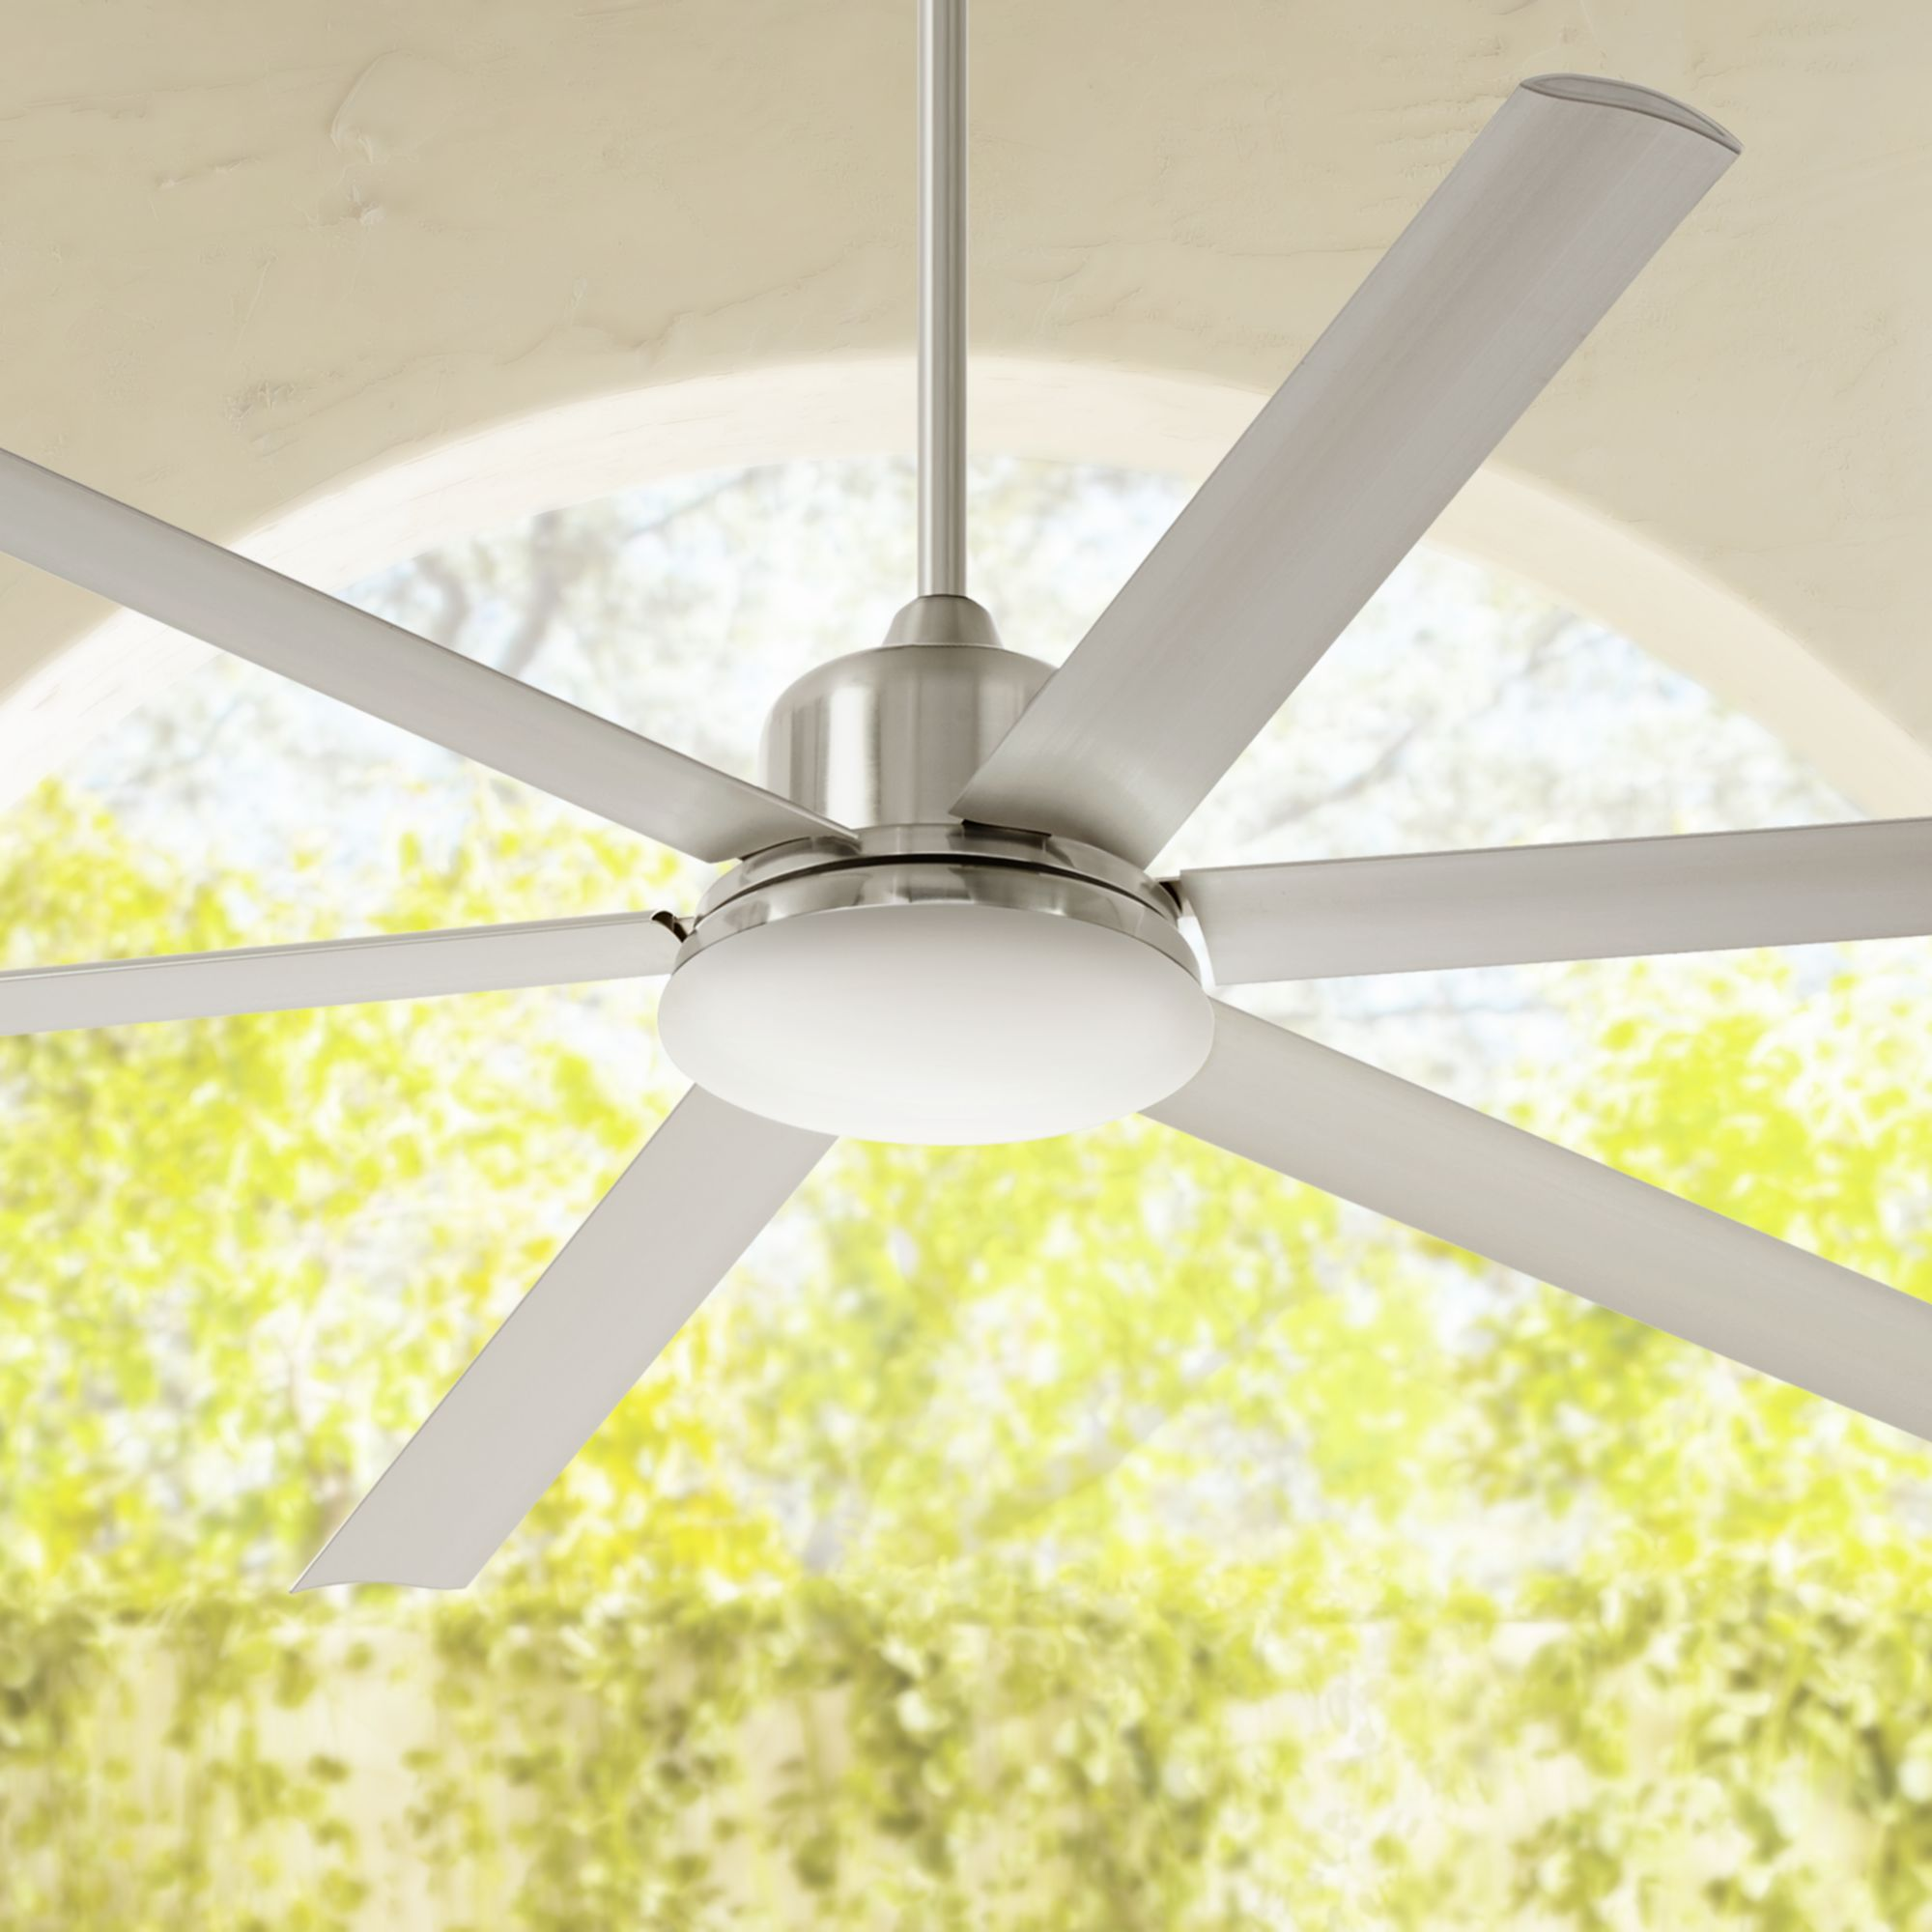 "72"" Casa Vieja Modern Outdoor Ceiling Fan with Light LED Dimmable Remote Control Brushed Nickel Damp Rated for Patio Porch"